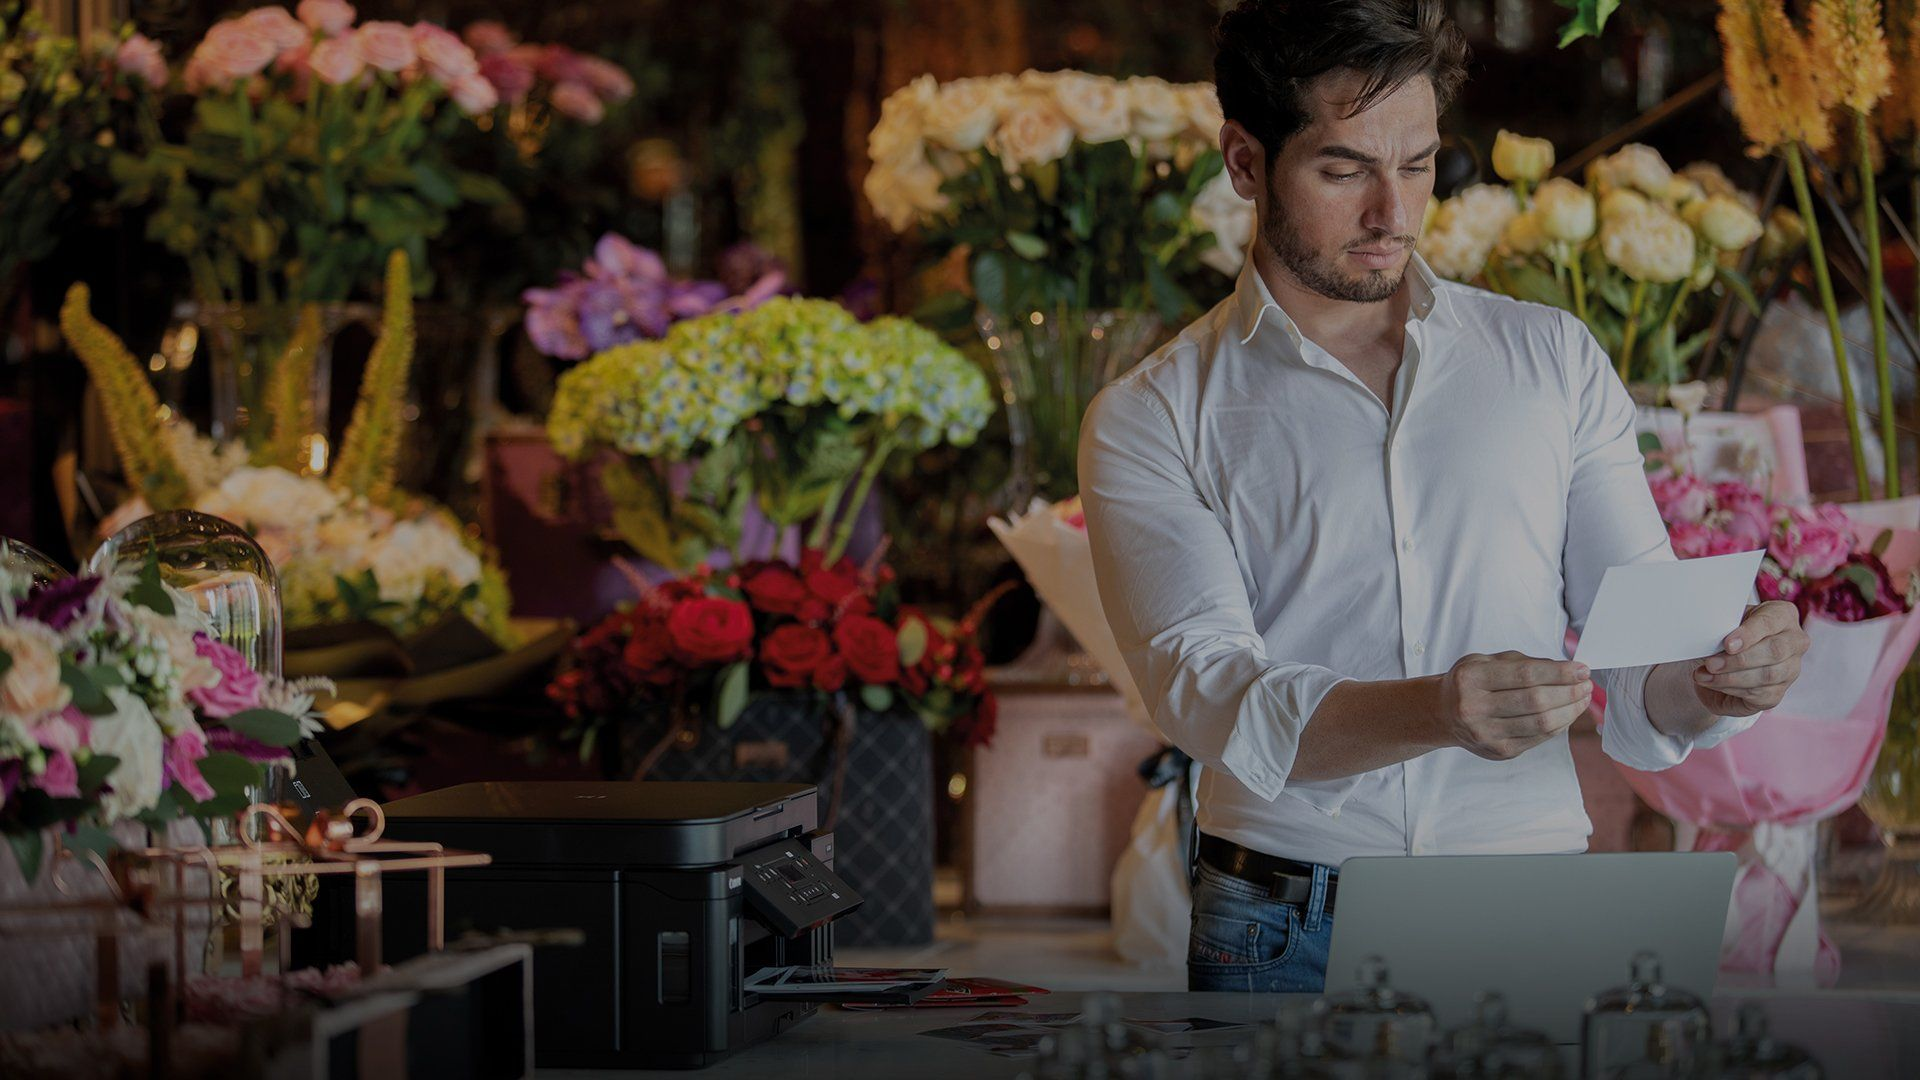 In a room filled with bouquets of flowers, a man holds a print he has made using a Canon PIXMA G6040 that can be seen on the table in front of him.